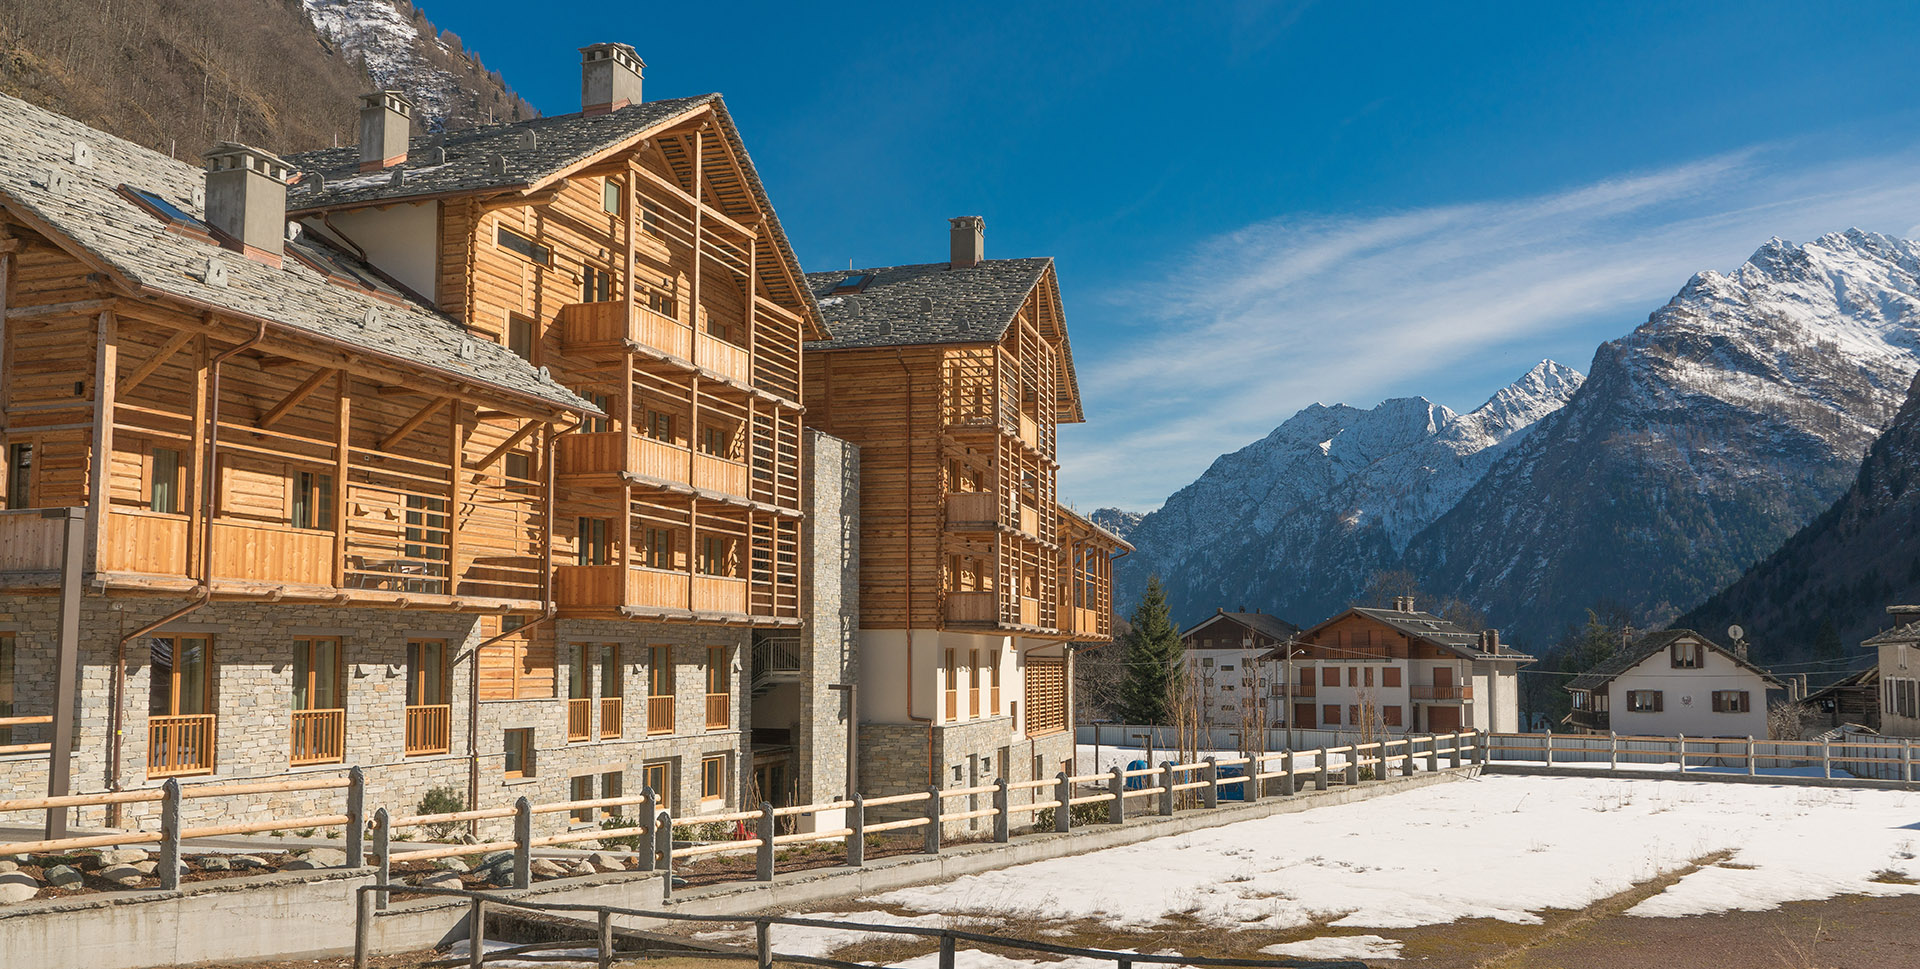 Quality resort in the Piedmont Alps